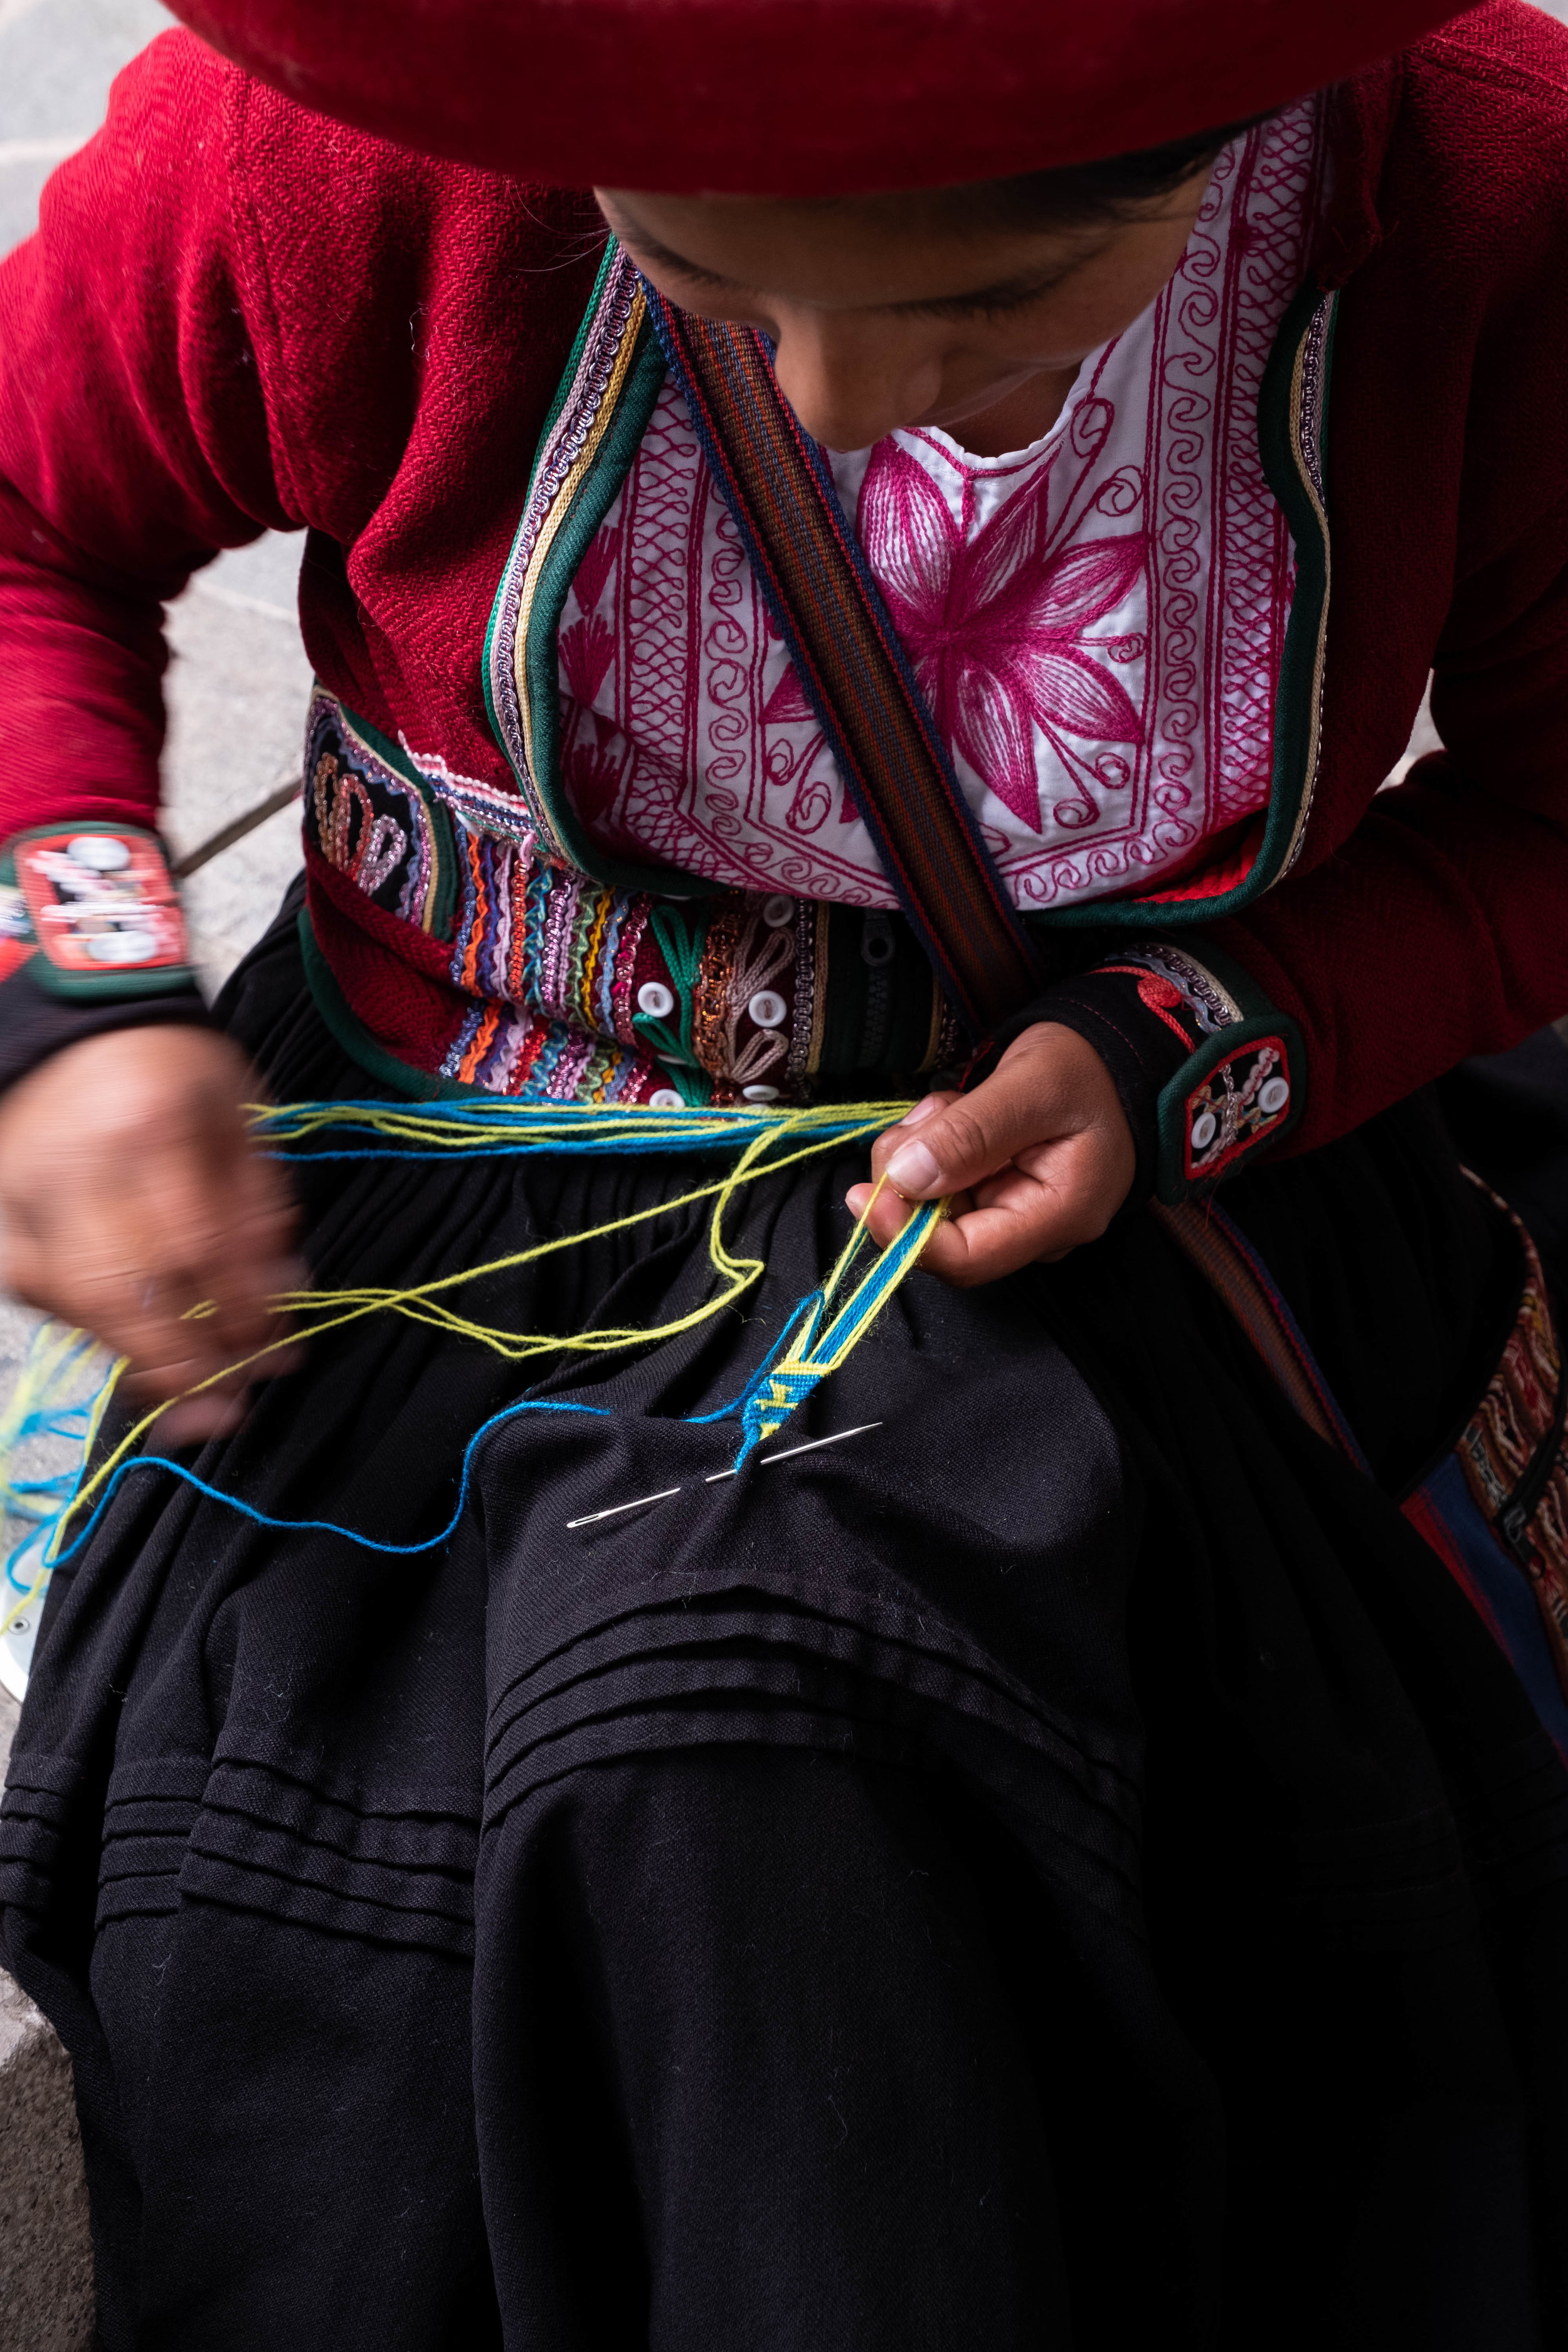 The art of weaving. Visitors can purchase locally woven scarves, blankets and small trinkets in the courtyard.